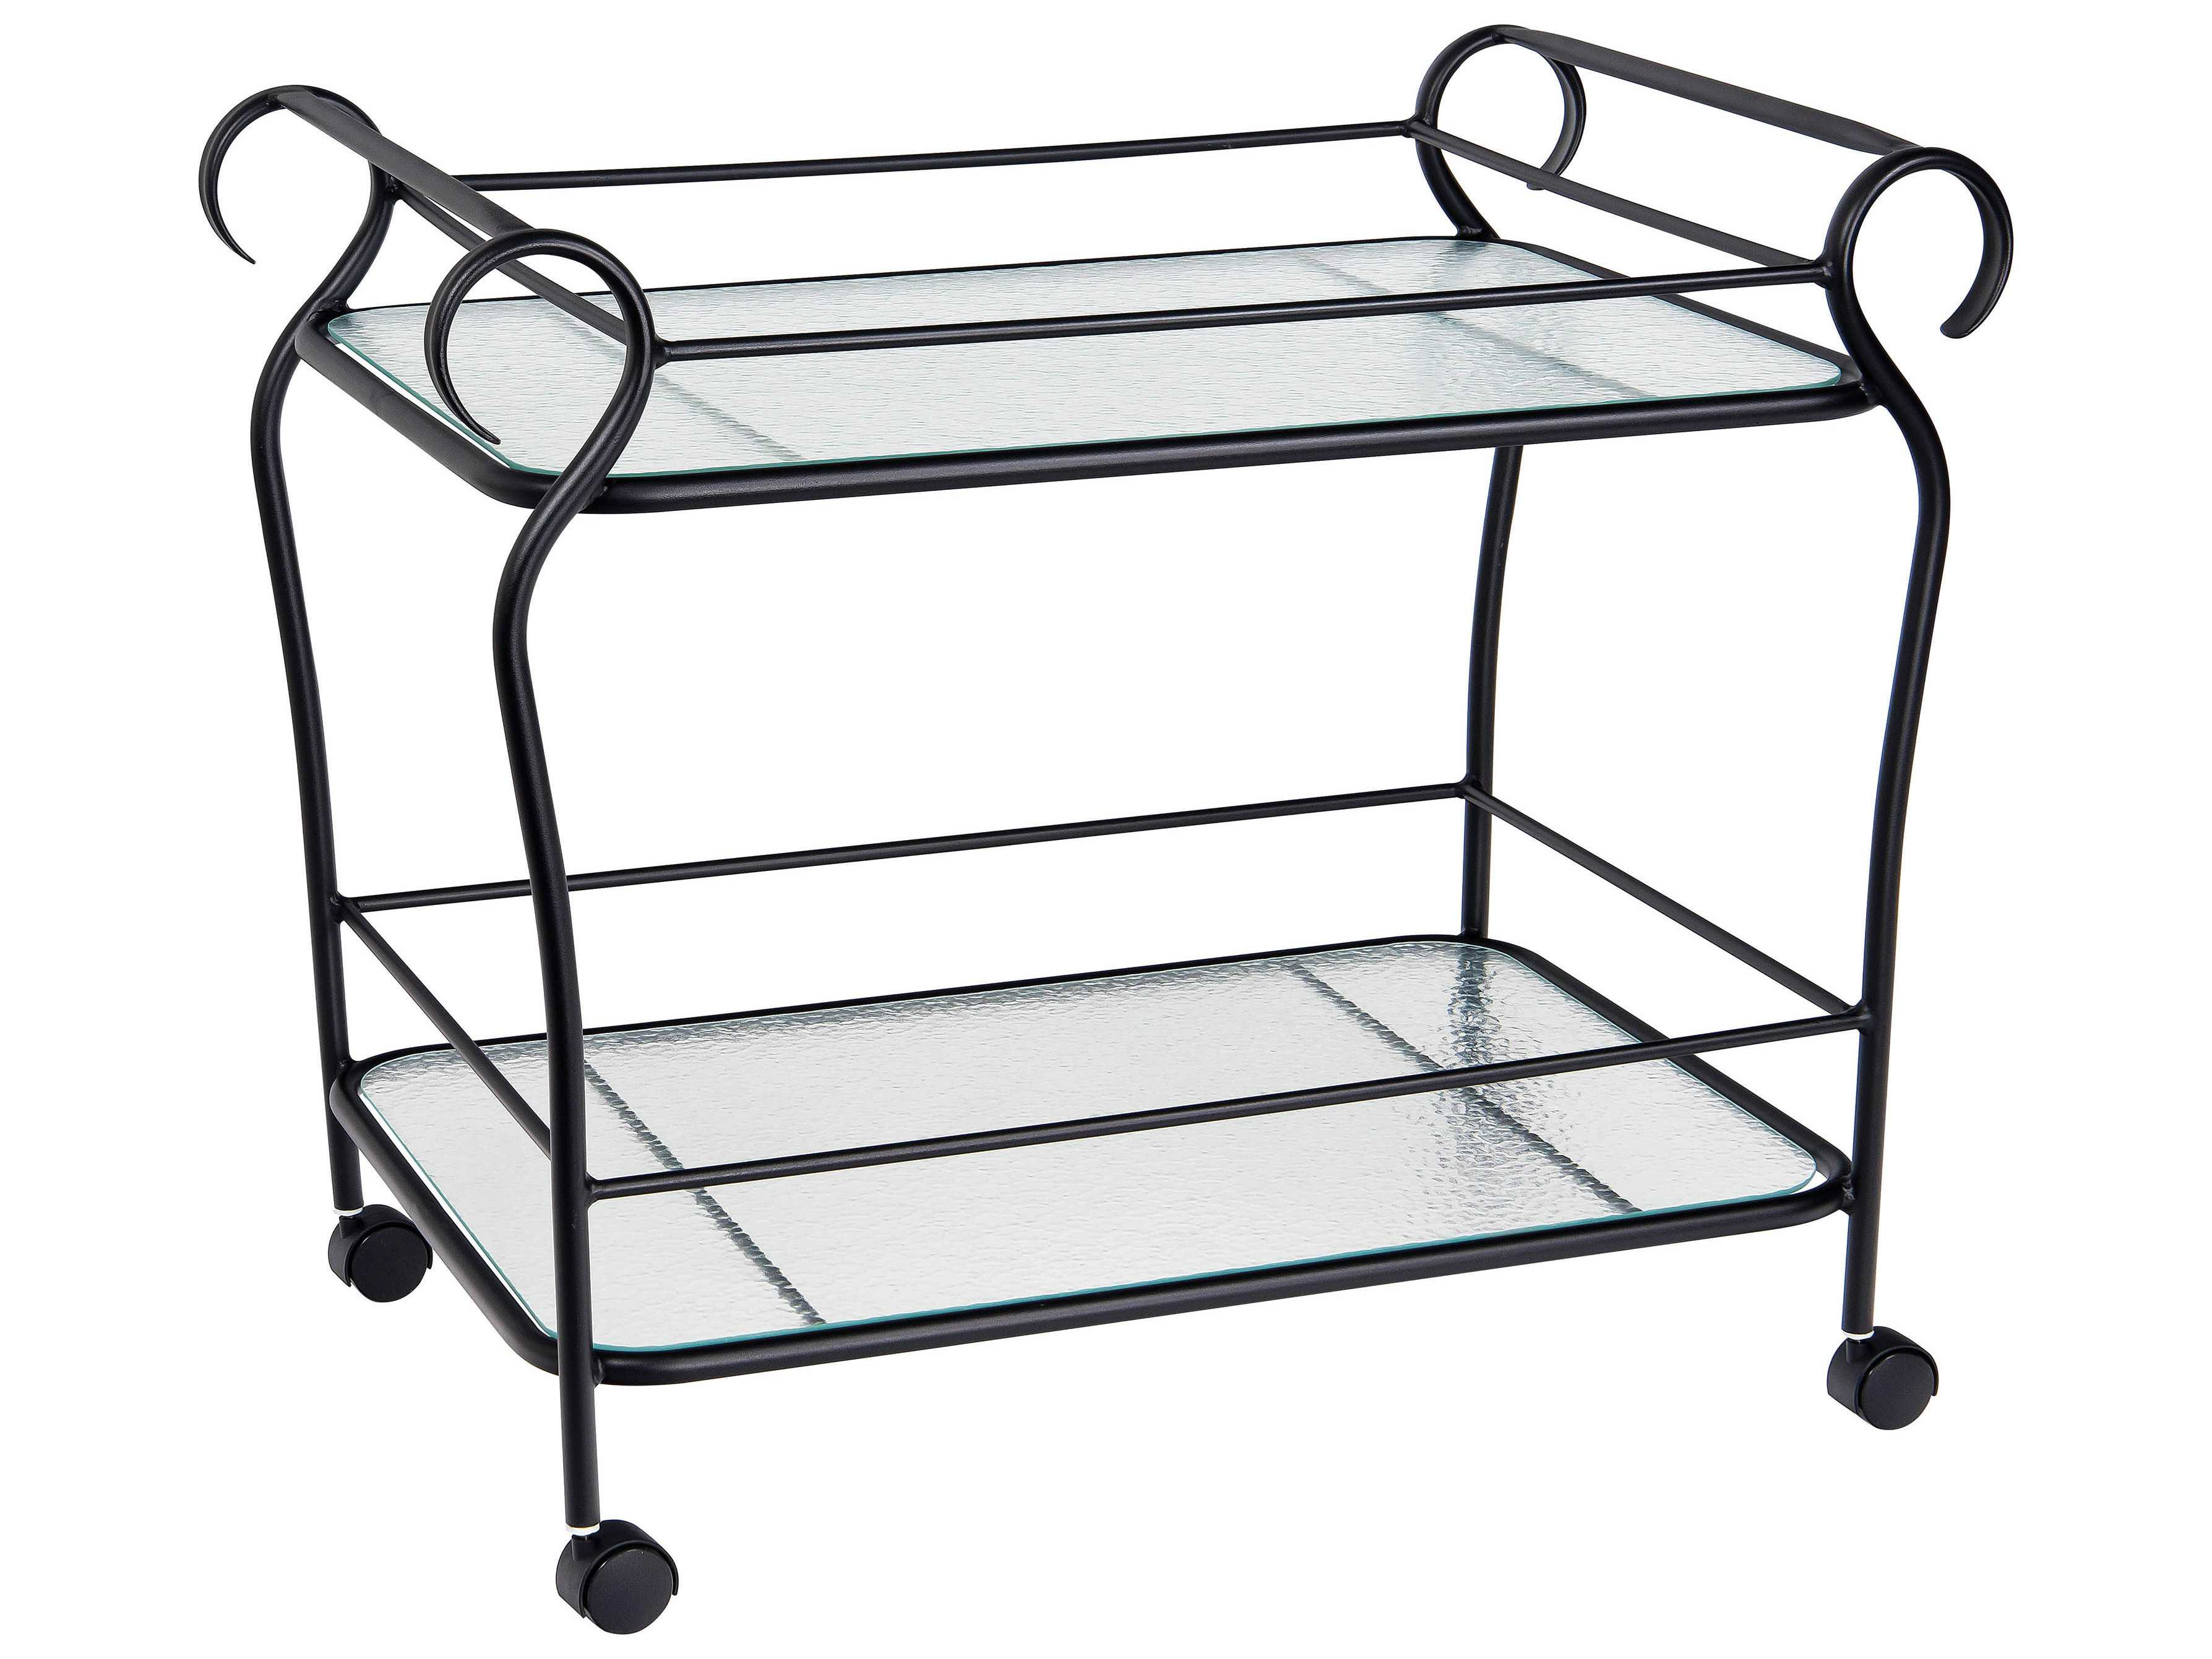 Woodard Ramsgate Aluminum Serving Cart Wr166483